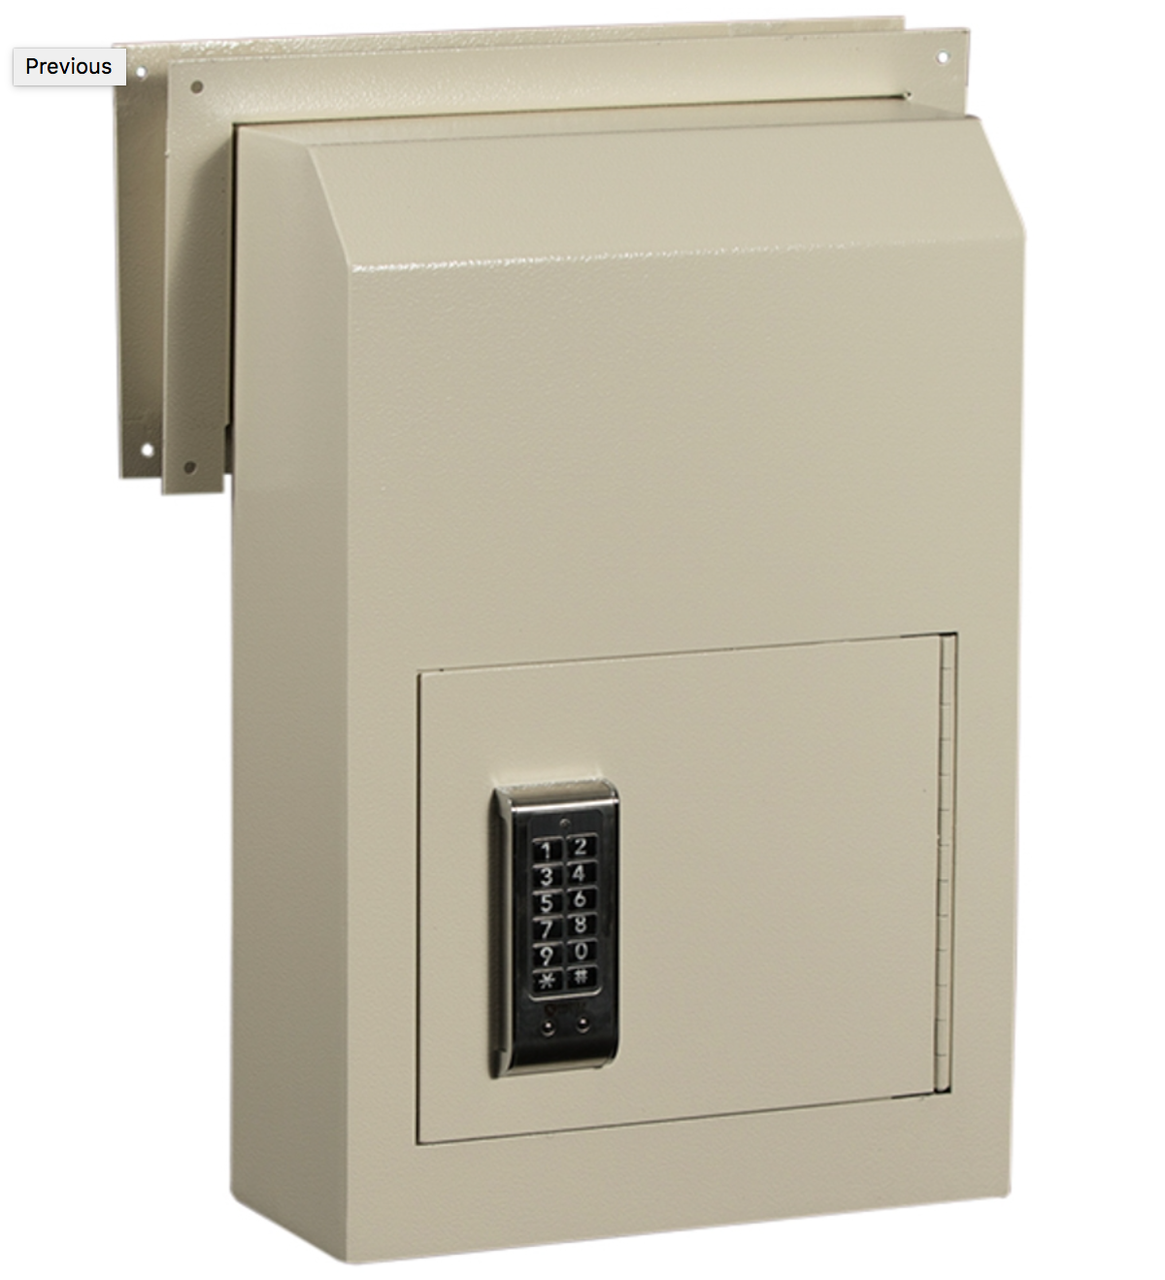 Shown with optional electronic lock